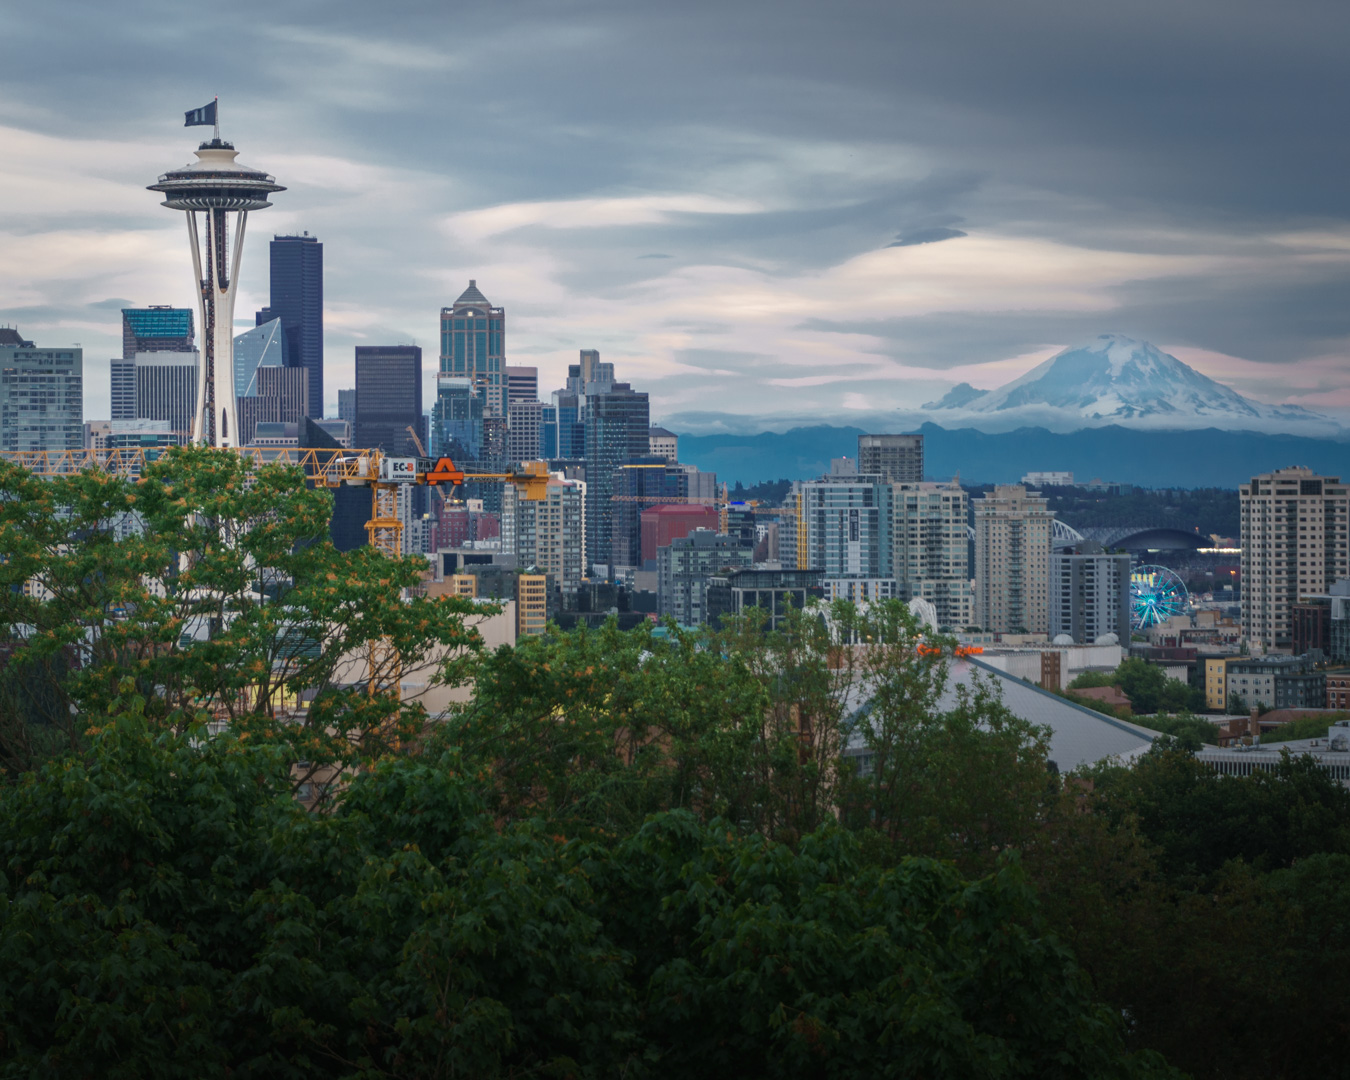 Mt. Rainier decided to come out for this one. Beautiful views from Kerry Park in Seattle, WA.